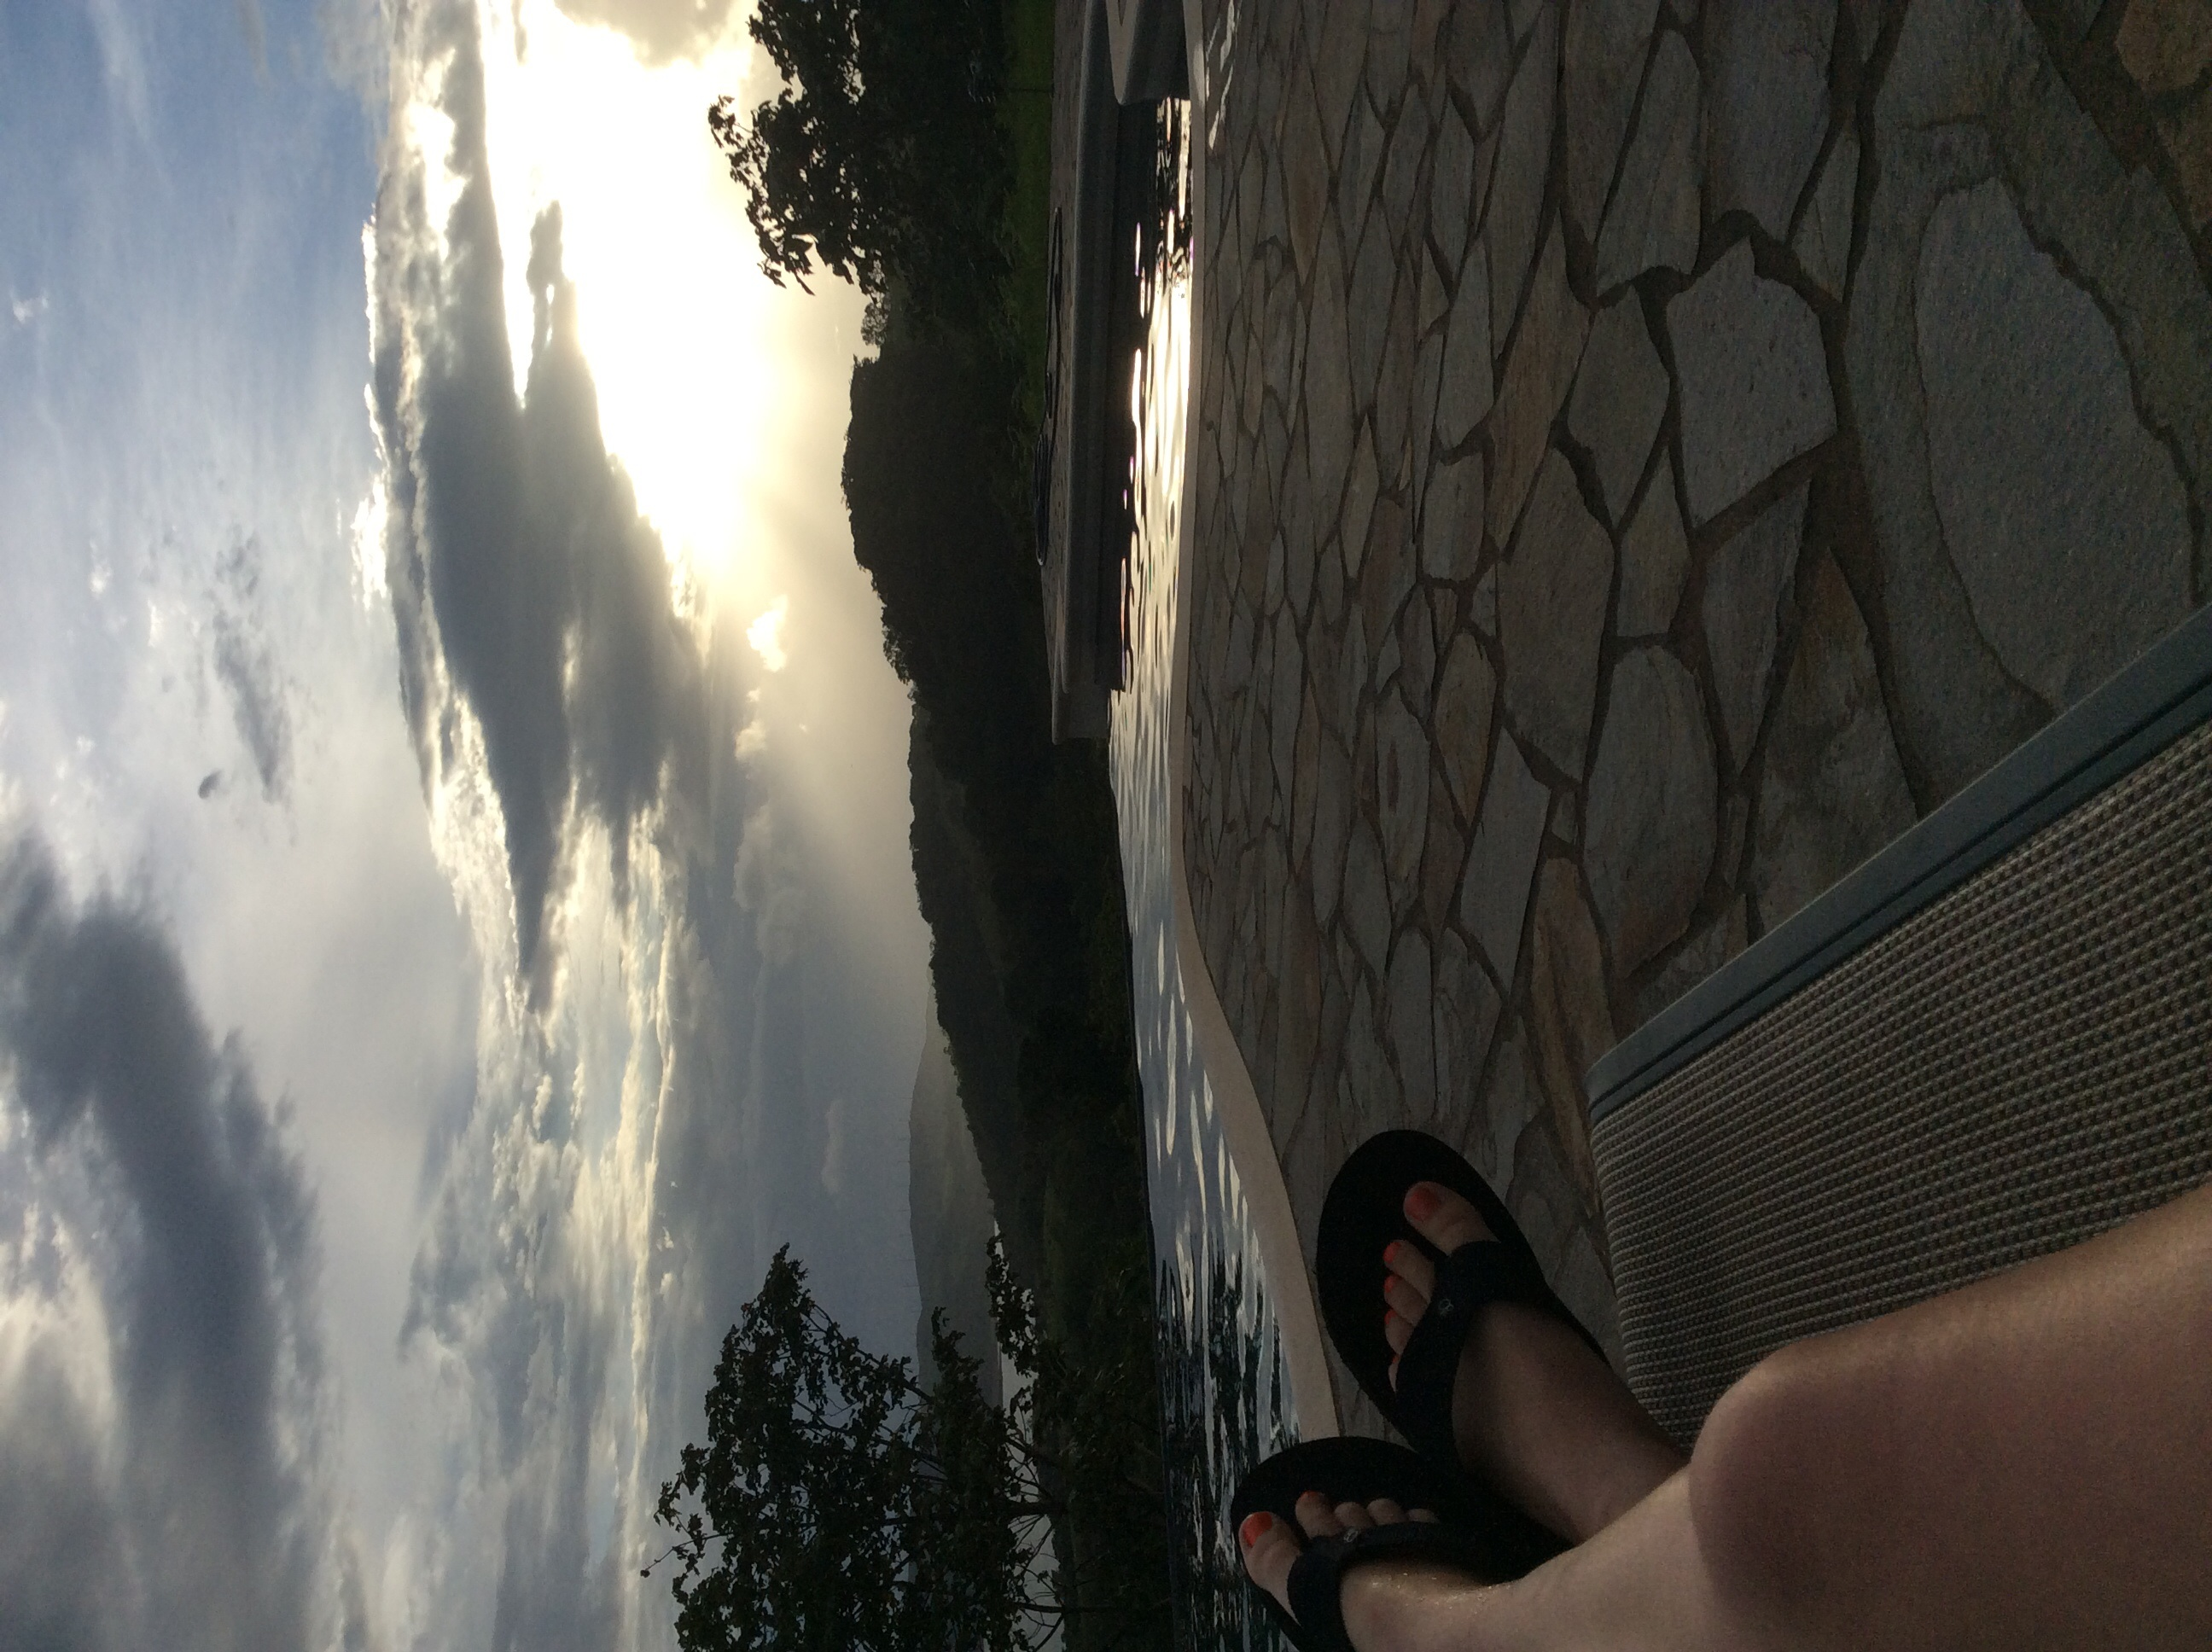 Chillin by the community infinity pool